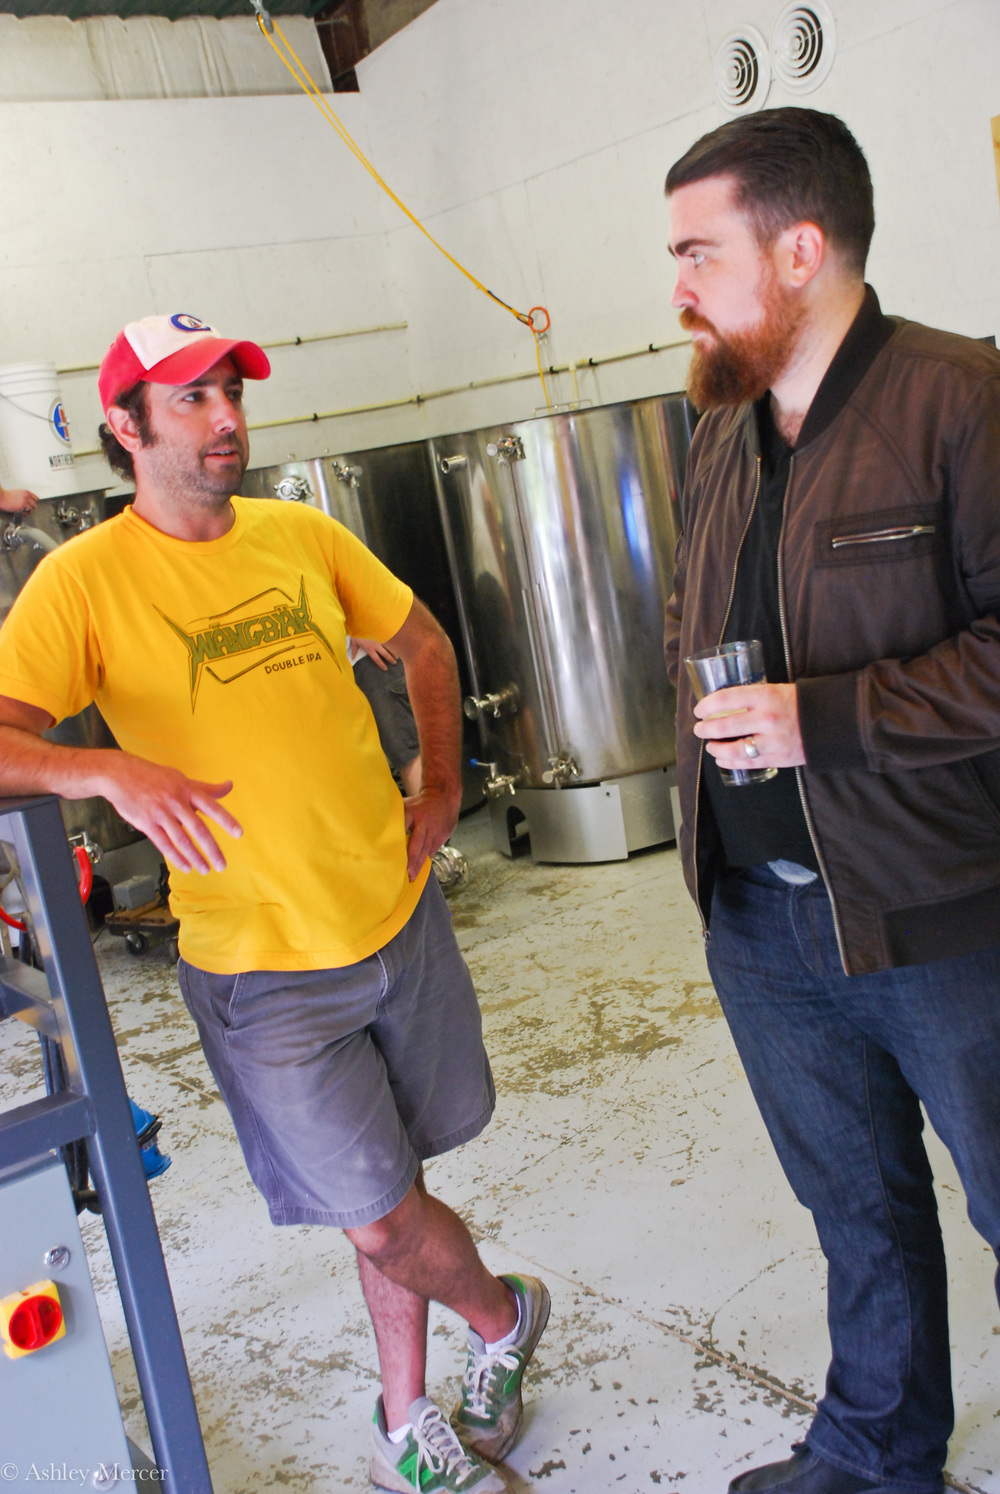 20131006_Hoof Hearted and EYE_0066.jpg